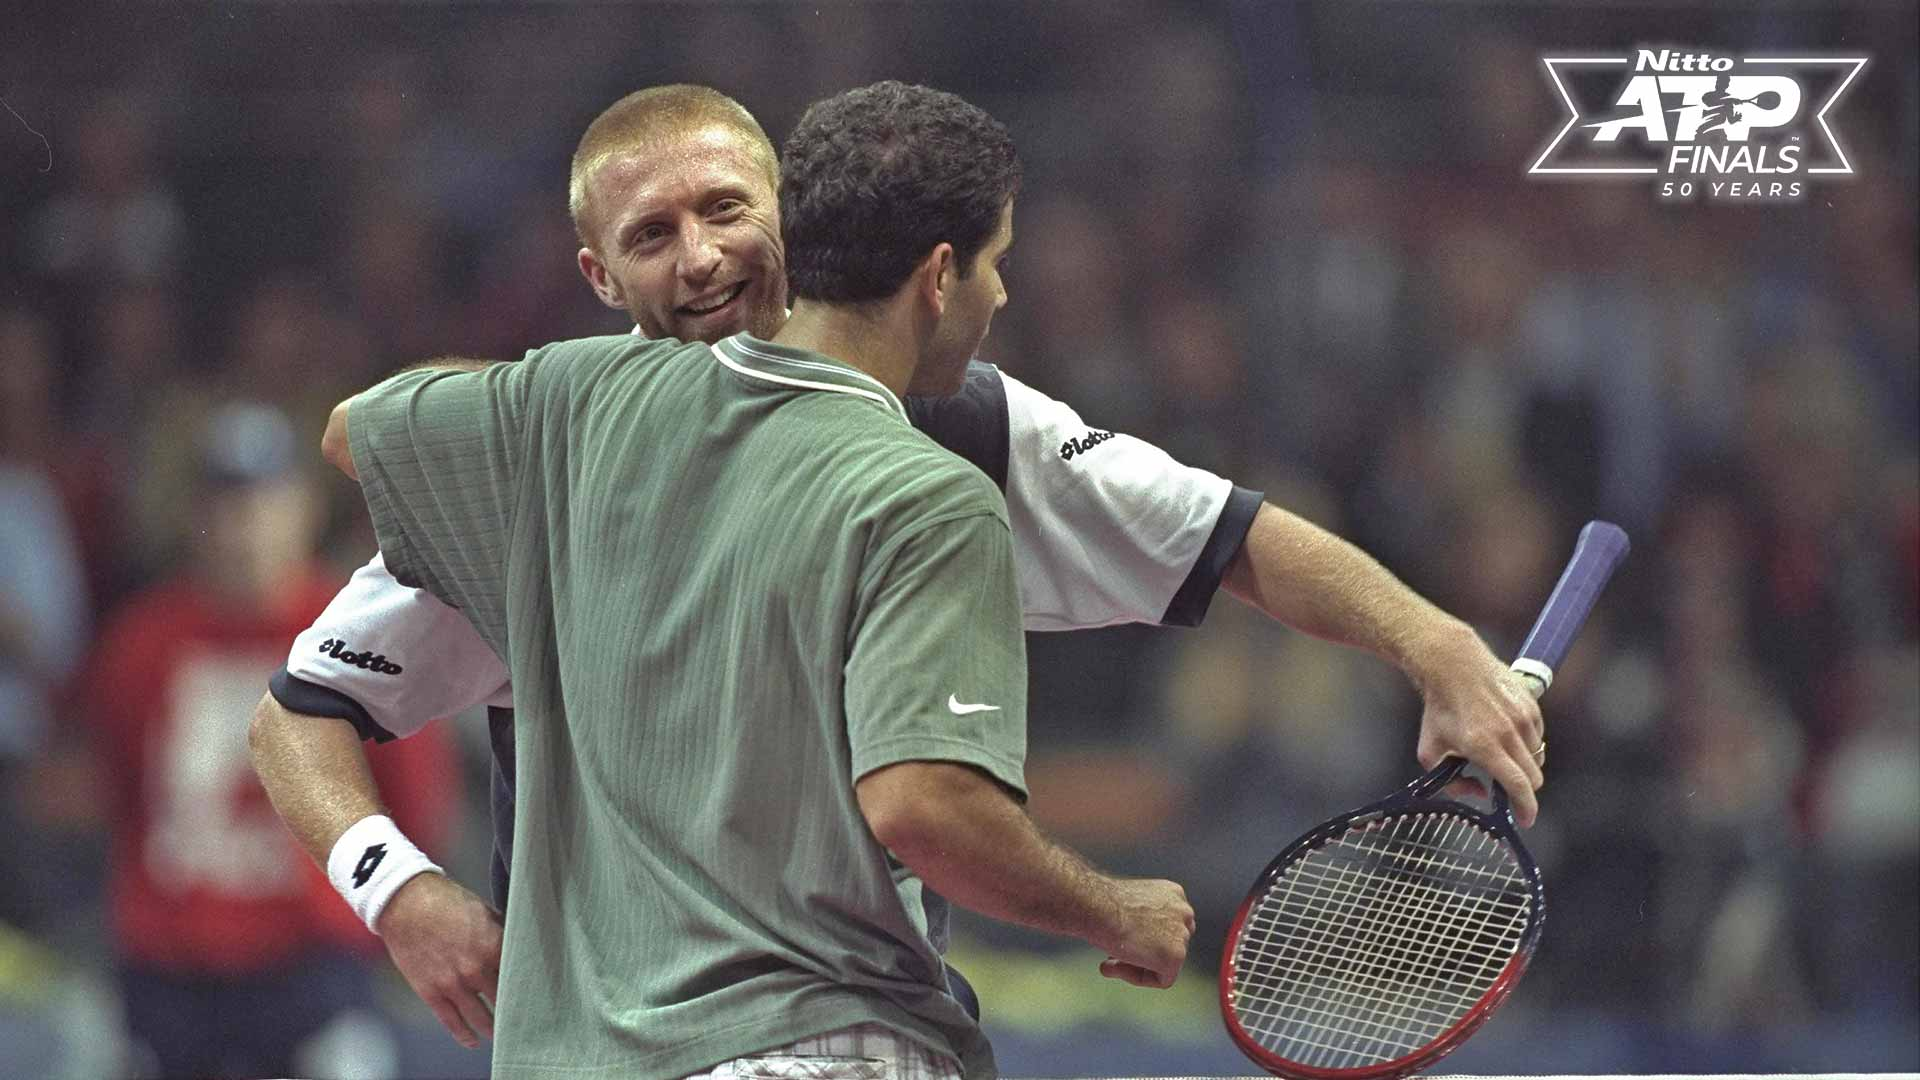 Pete Sampras and Boris Becker embrace after their epic five-set final in 1996 in Hanover.